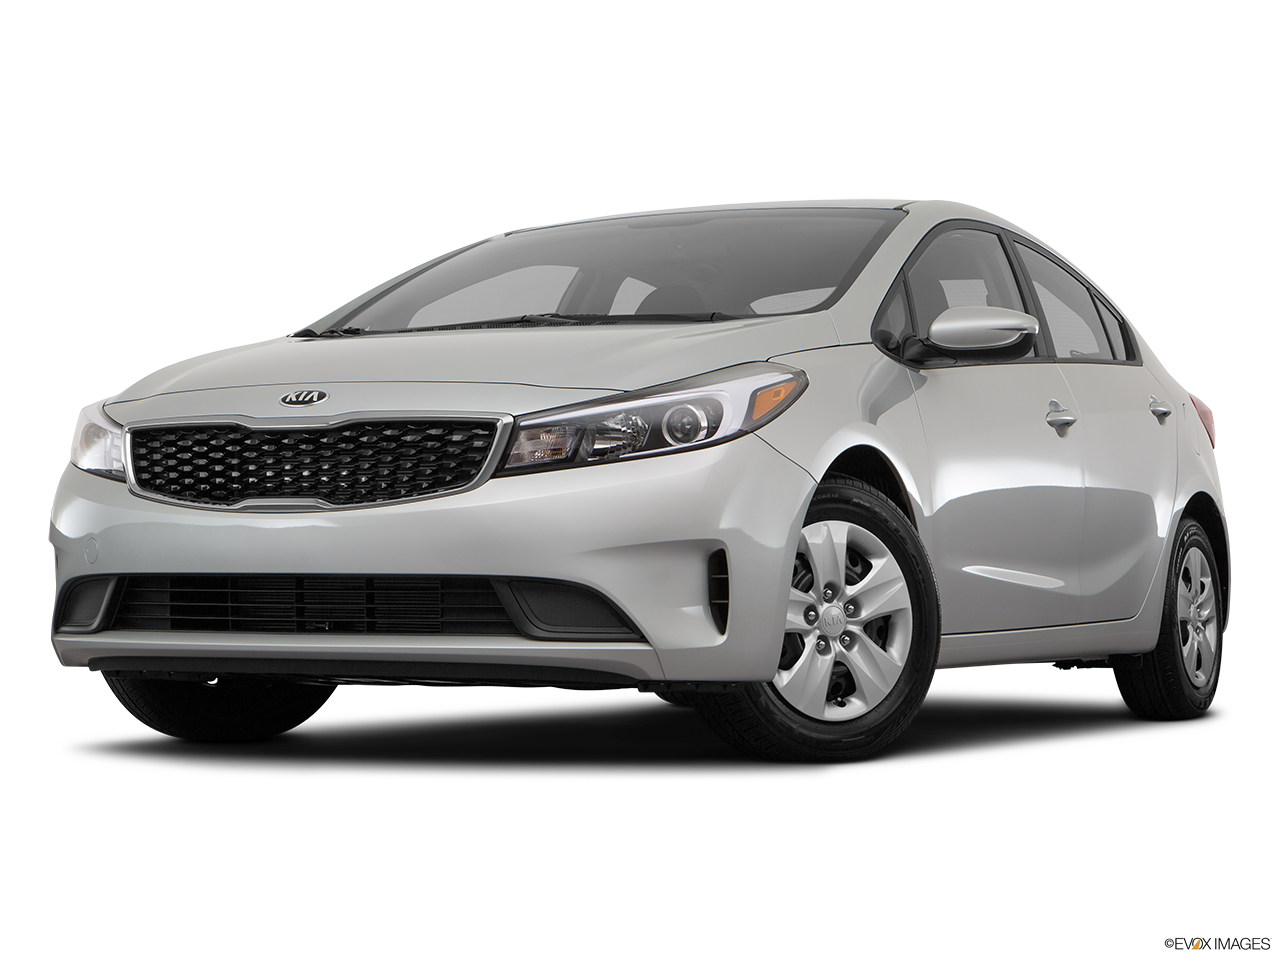 Test Drive A 2017 Kia Forte at Galpin Kia in Los Angeles